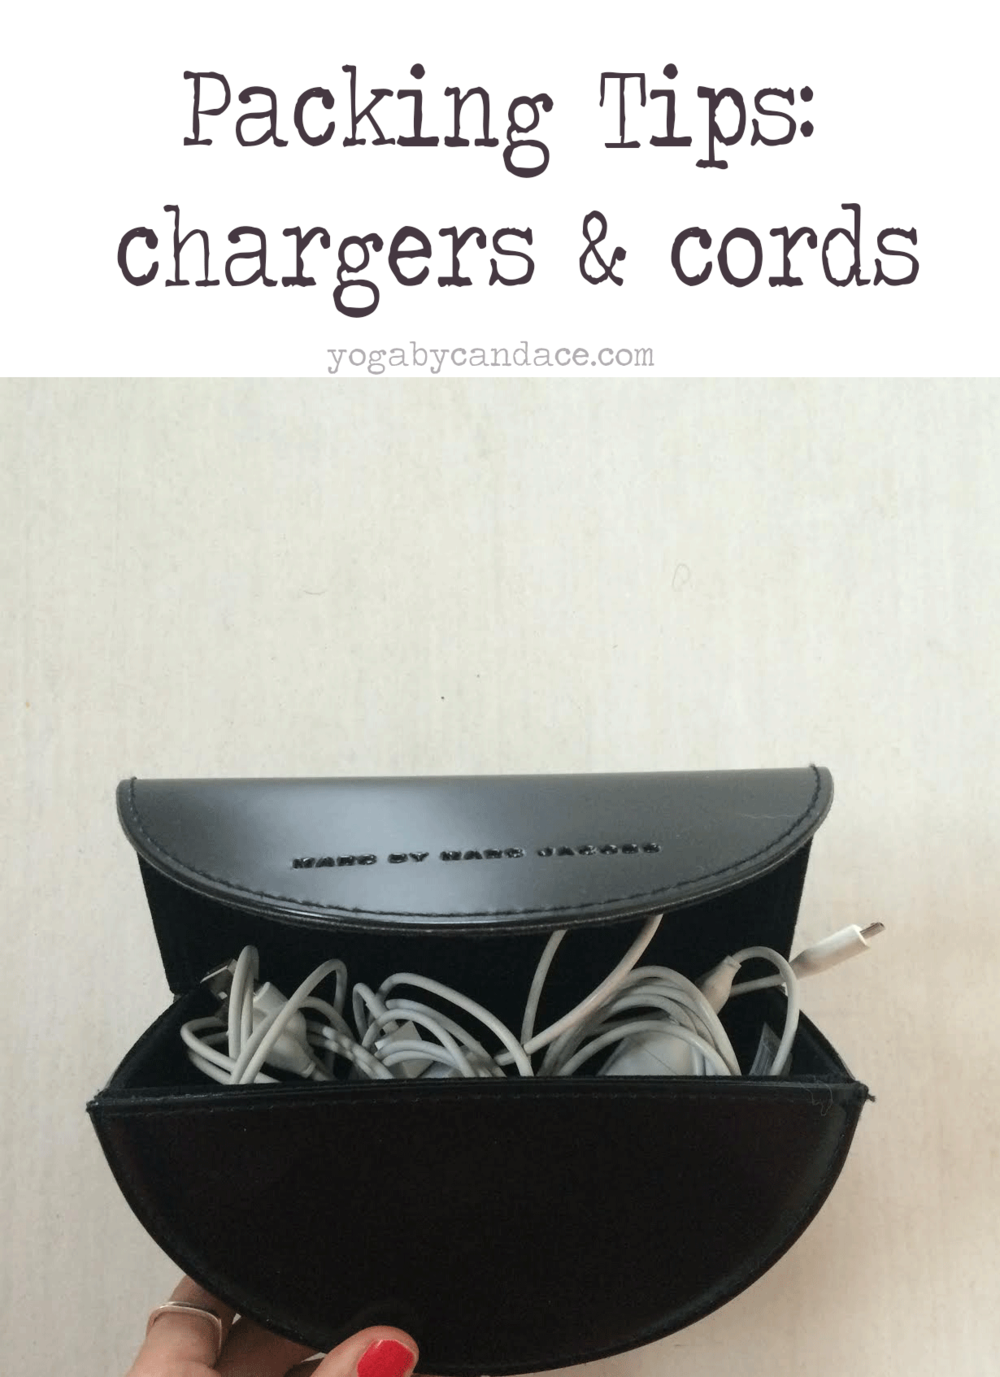 Packing tips for your chargers